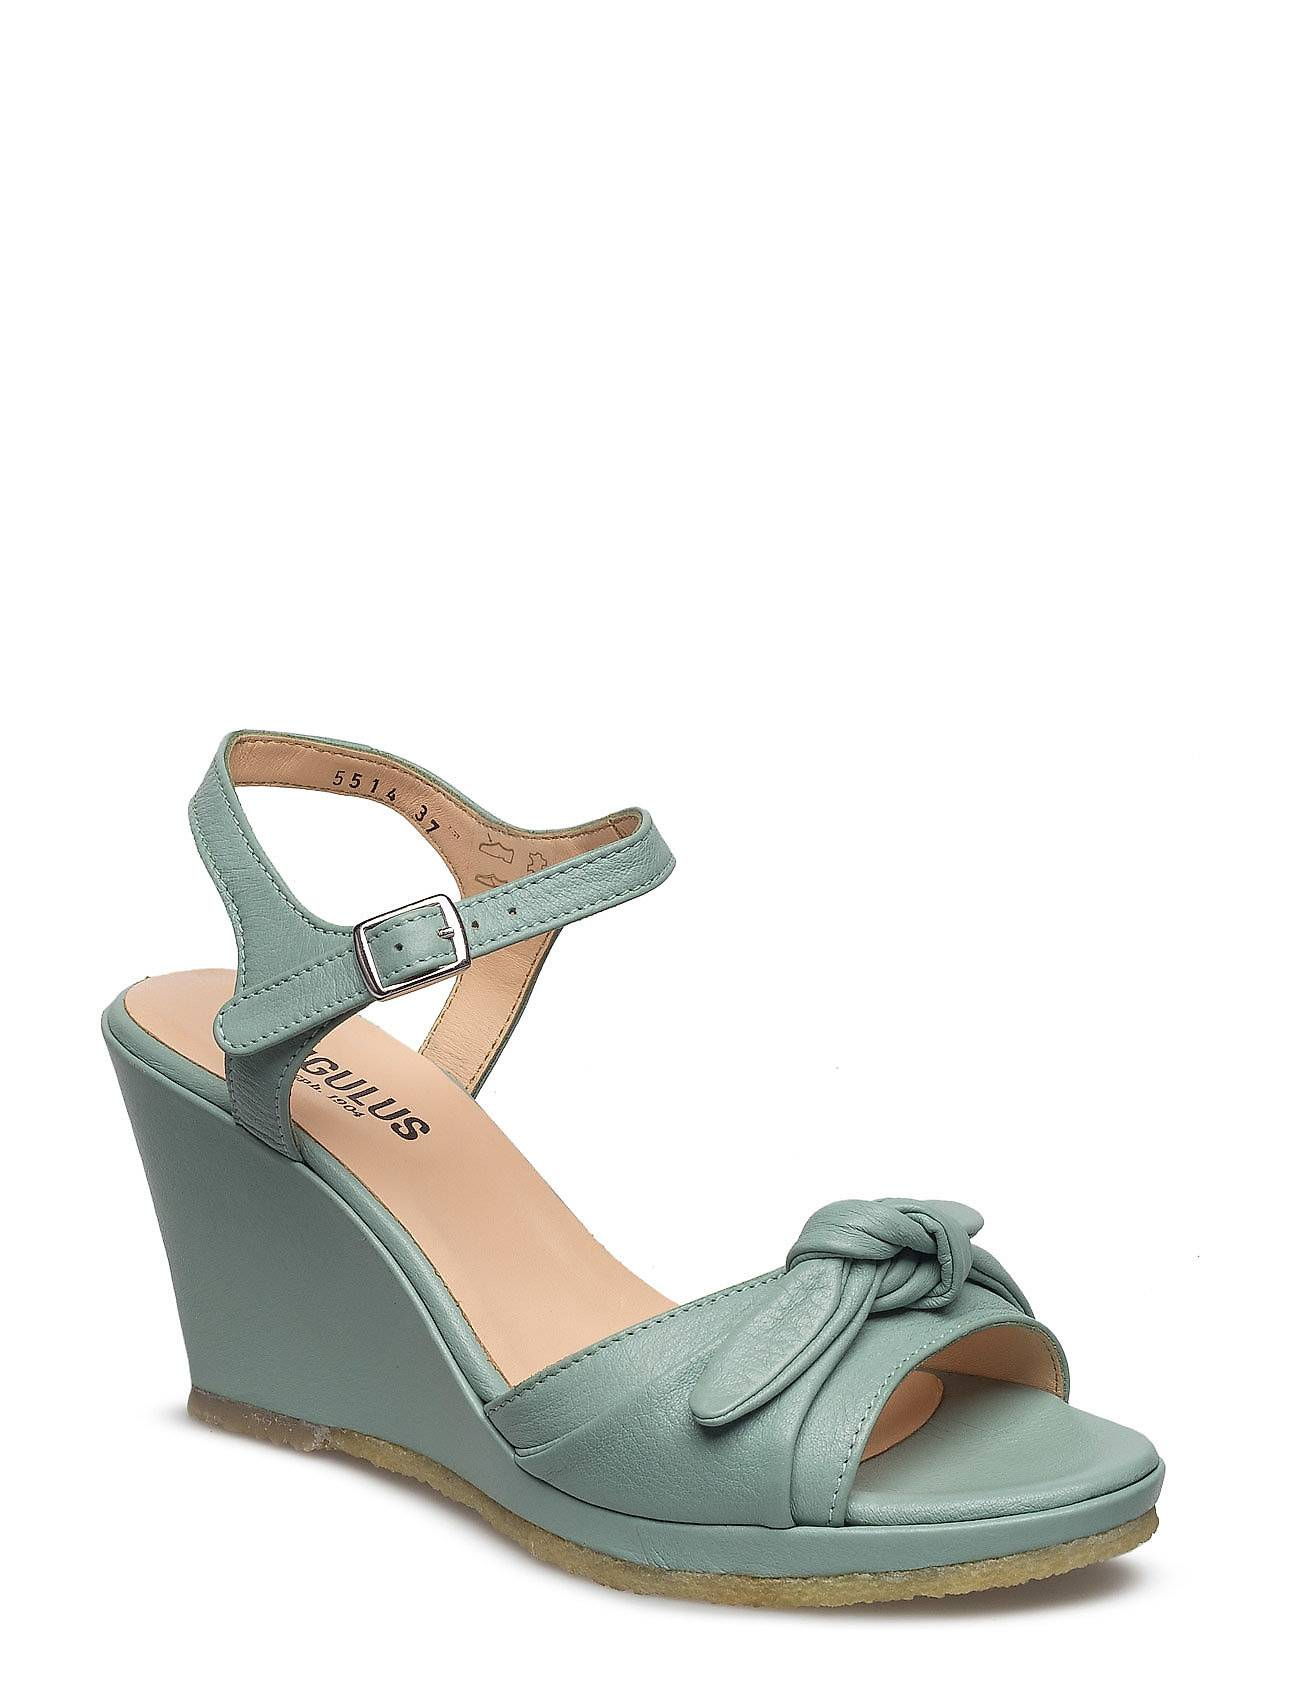 ANGULUS Sandals  - Wedge -Open Toe -Closed Counter